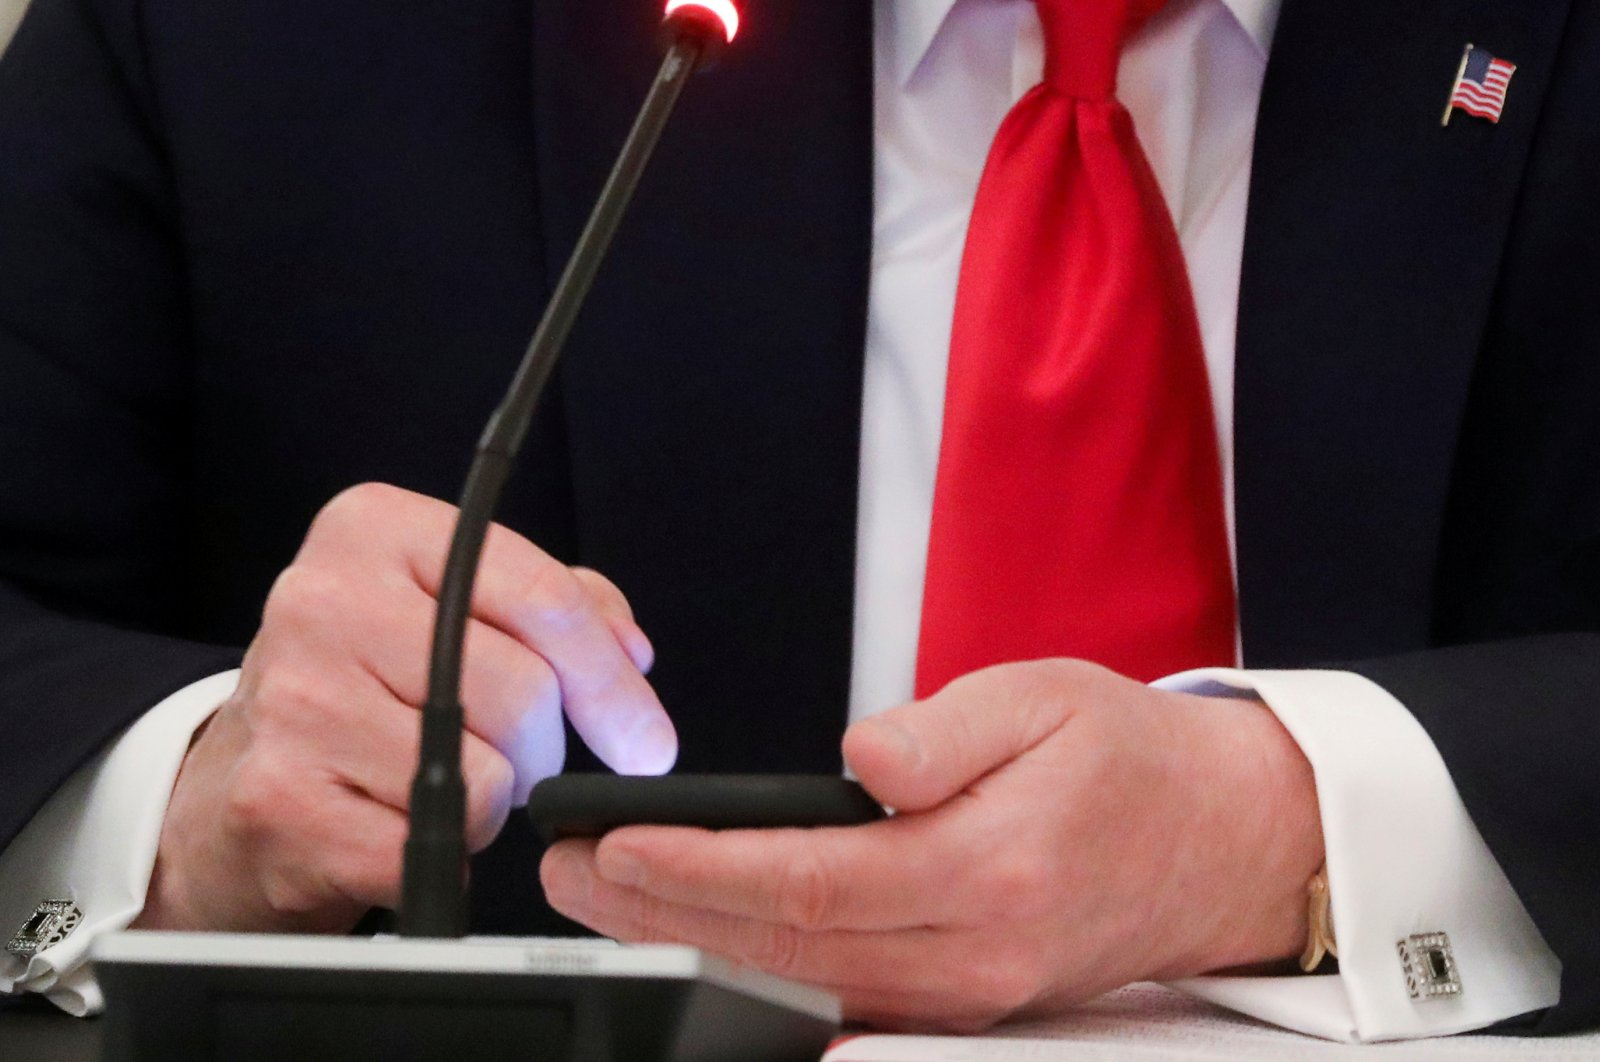 US President Donald Trump taps the screen on a mobile phone at the approximate time a tweet was released from his Twitter account, during a roundtable discussion on the reopening of small businesses in the State Dining Room at the White House in Washington, U.S., June 18, 2020. (Reuters Photo)